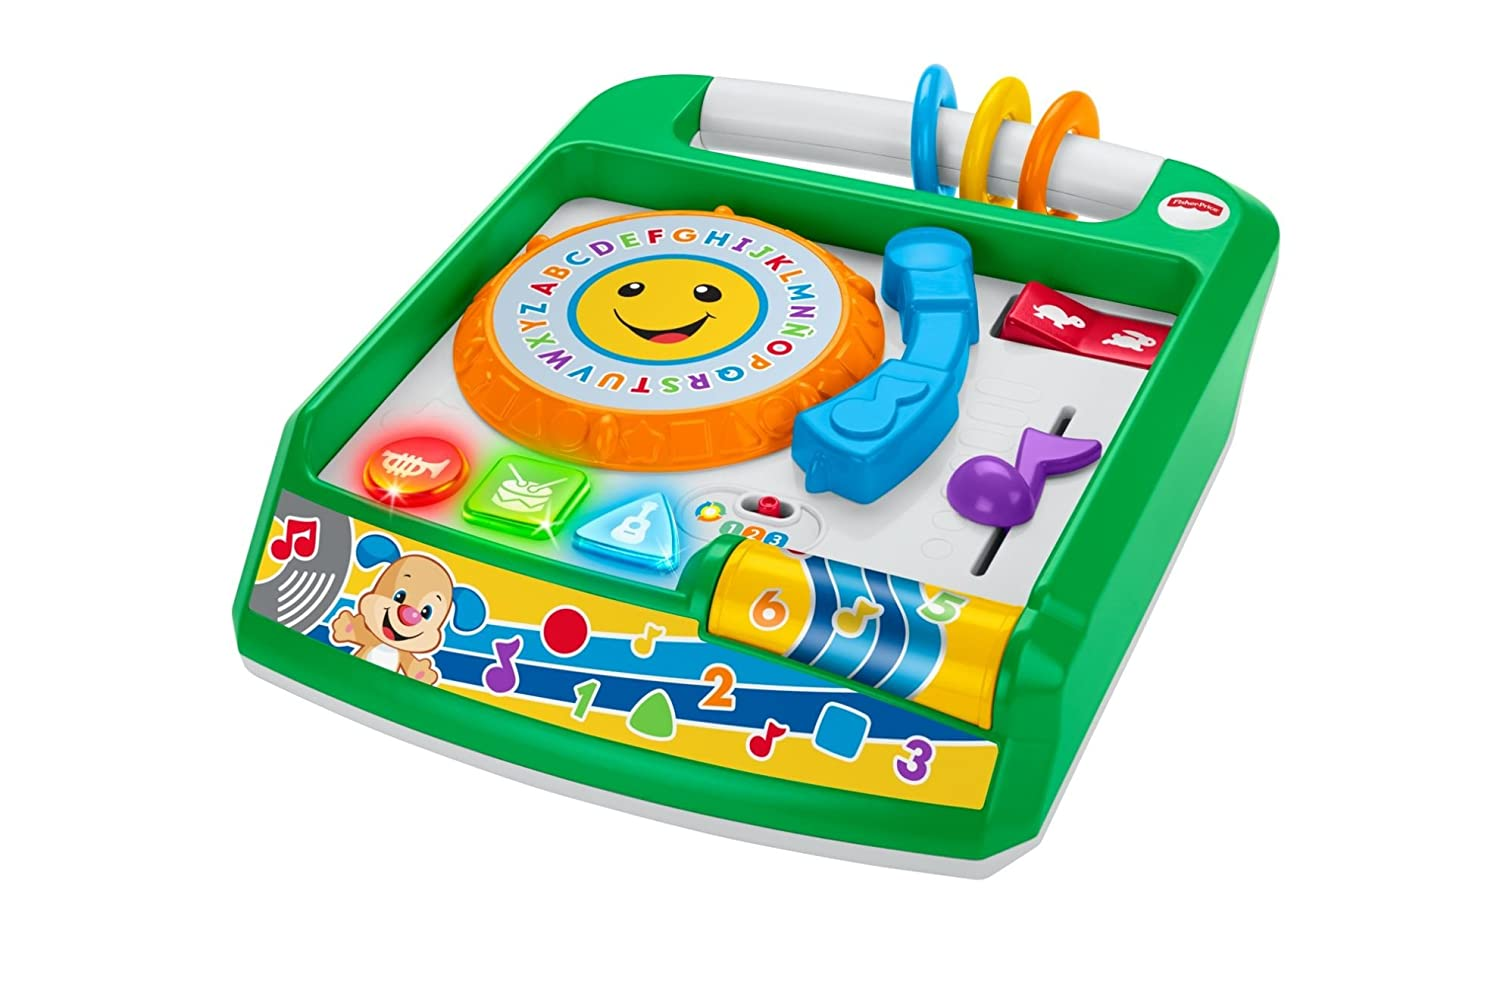 Fisher Price DJ aprendizaje musical